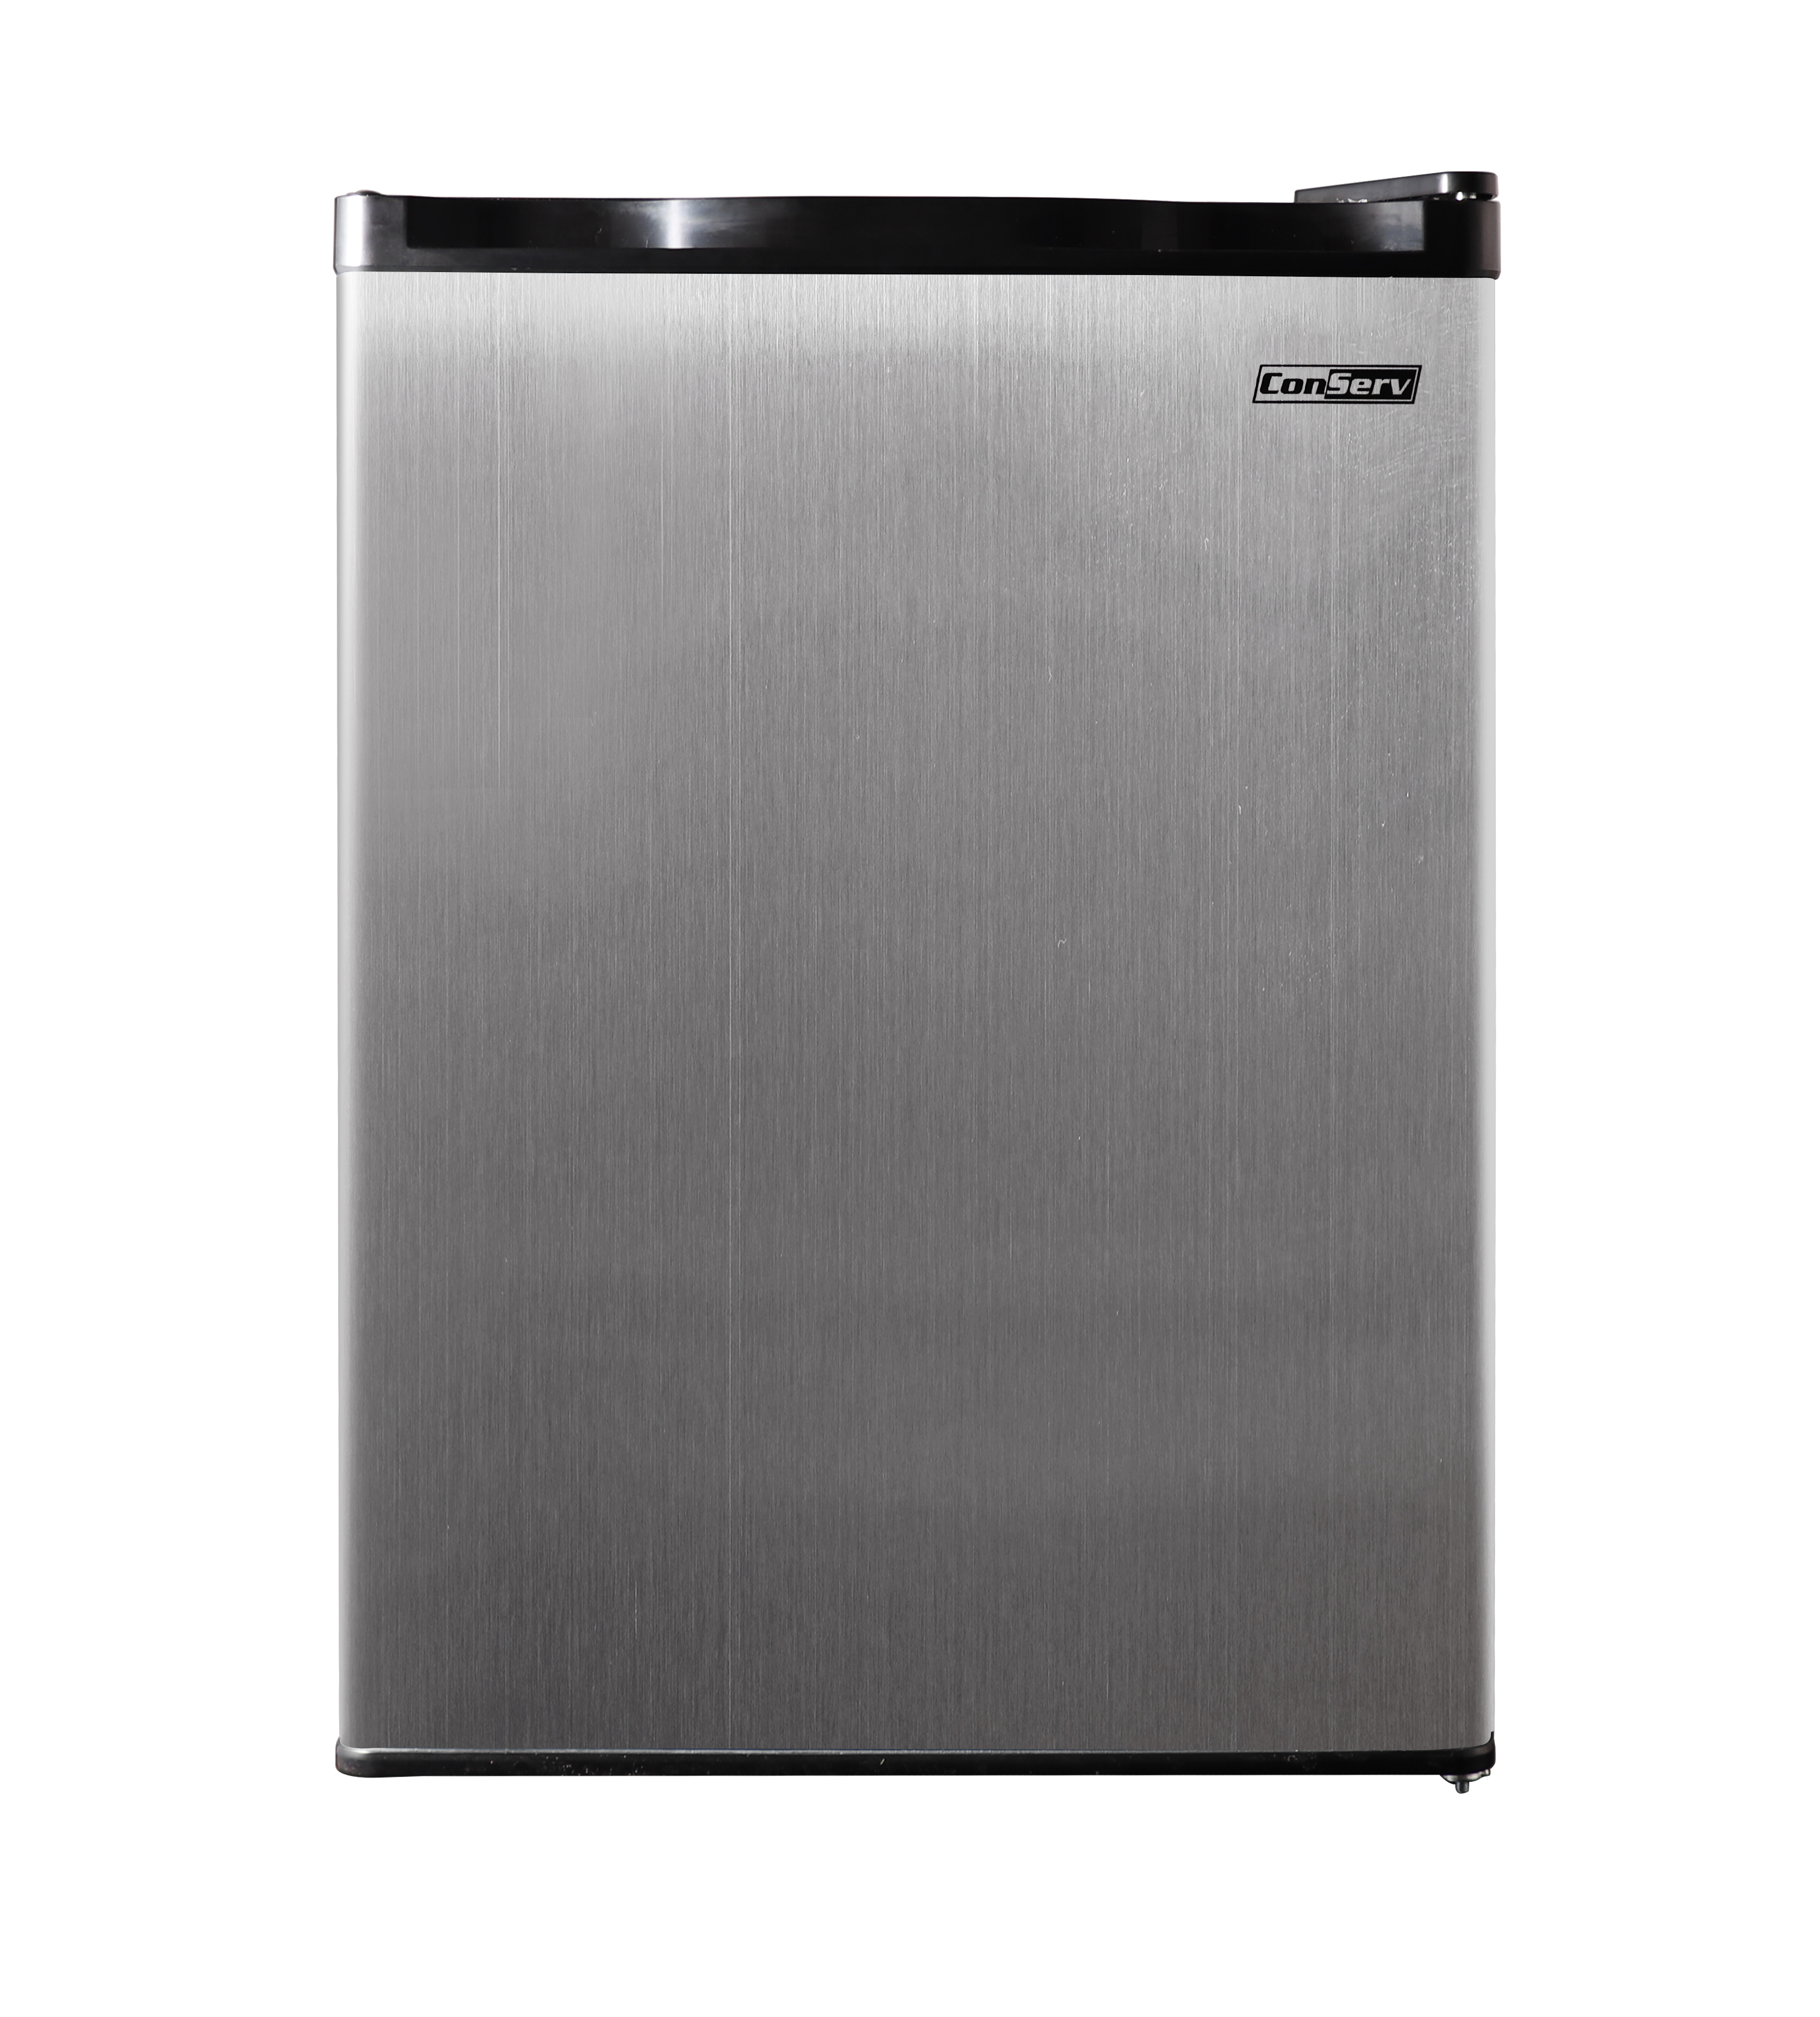 Equator Introduces Two New Compact Refrigerator Models